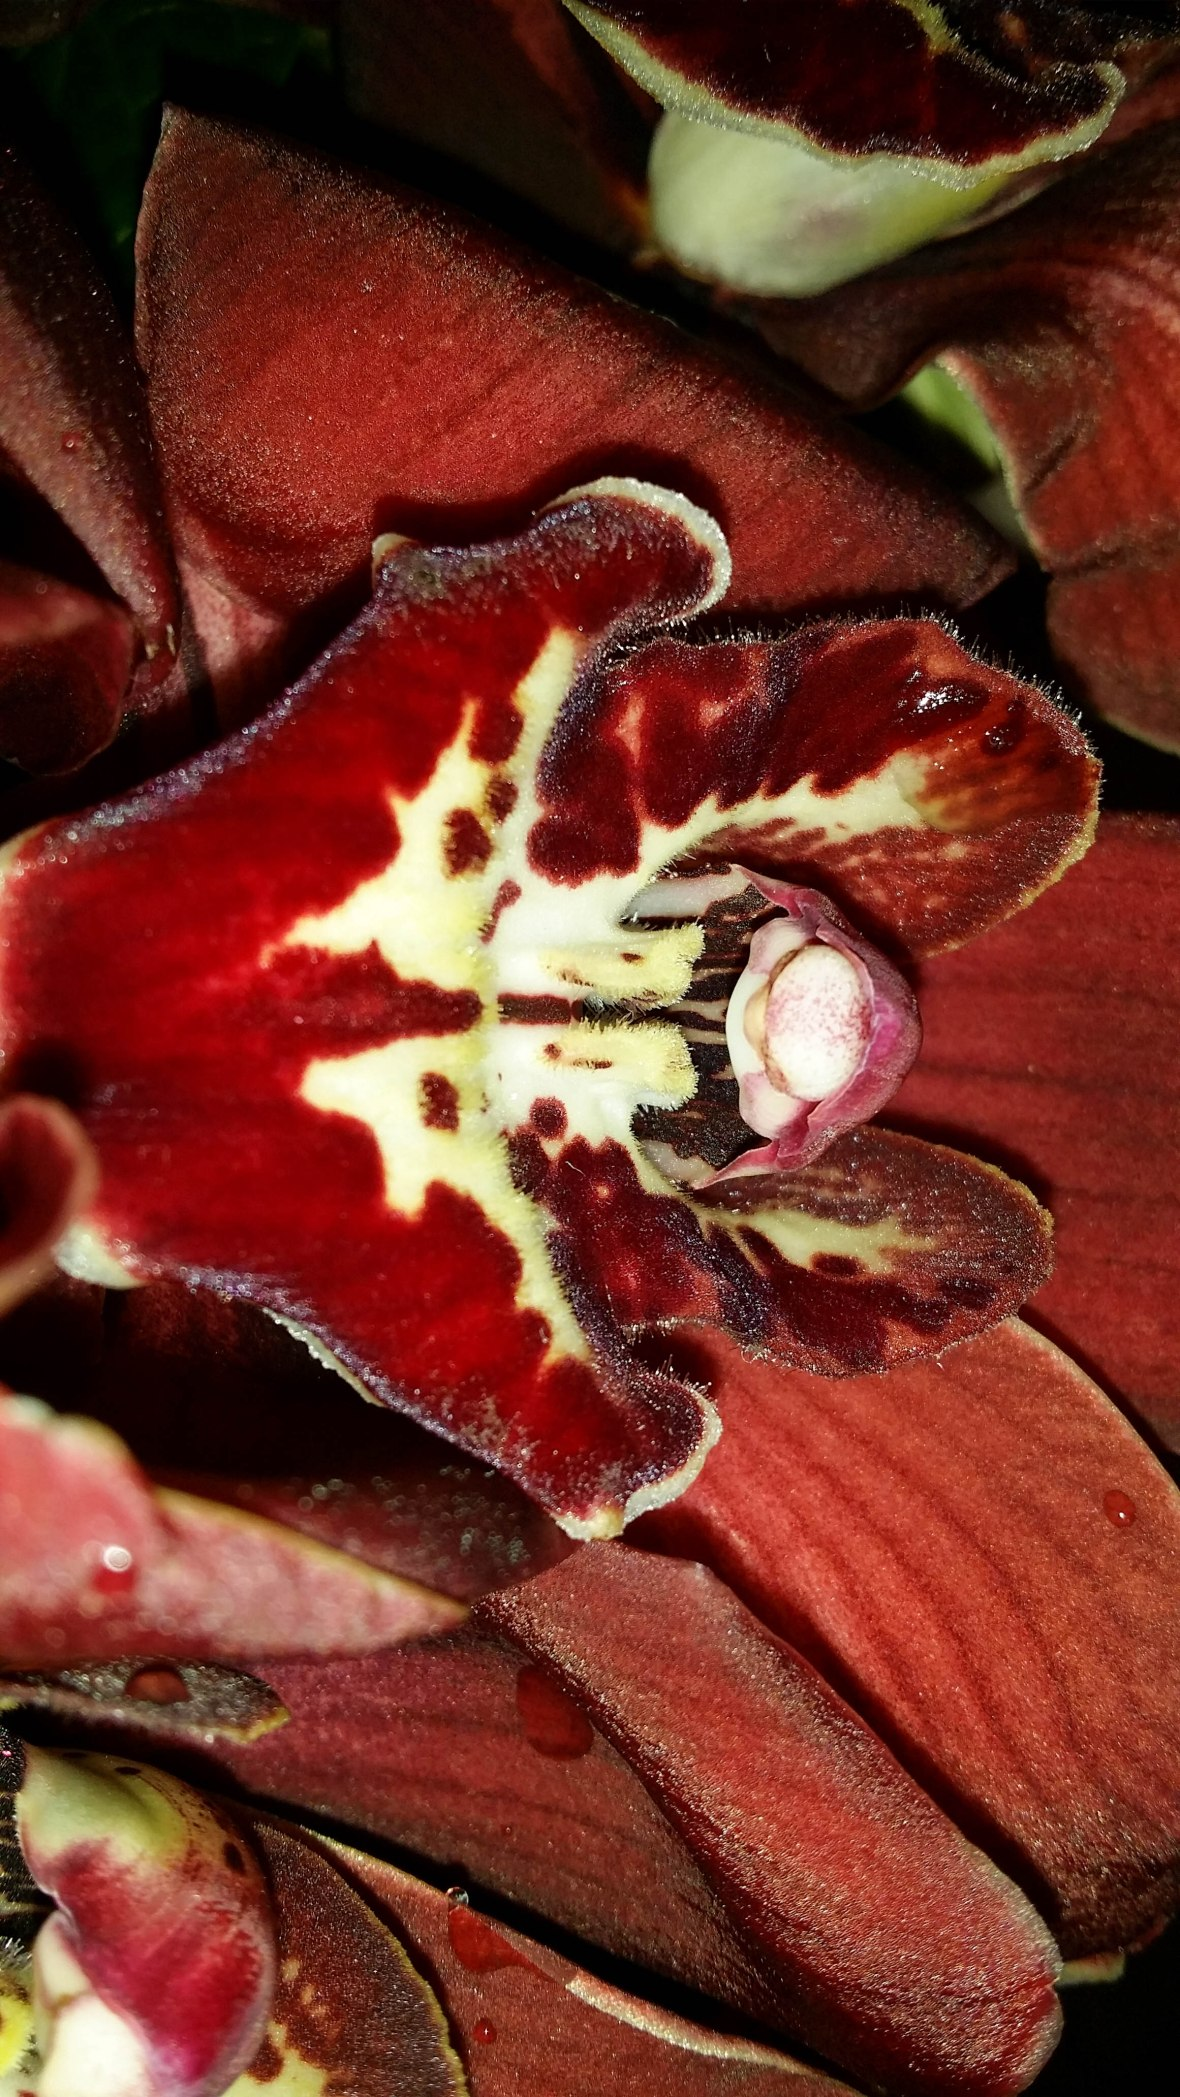 The Chocolate Orchid II